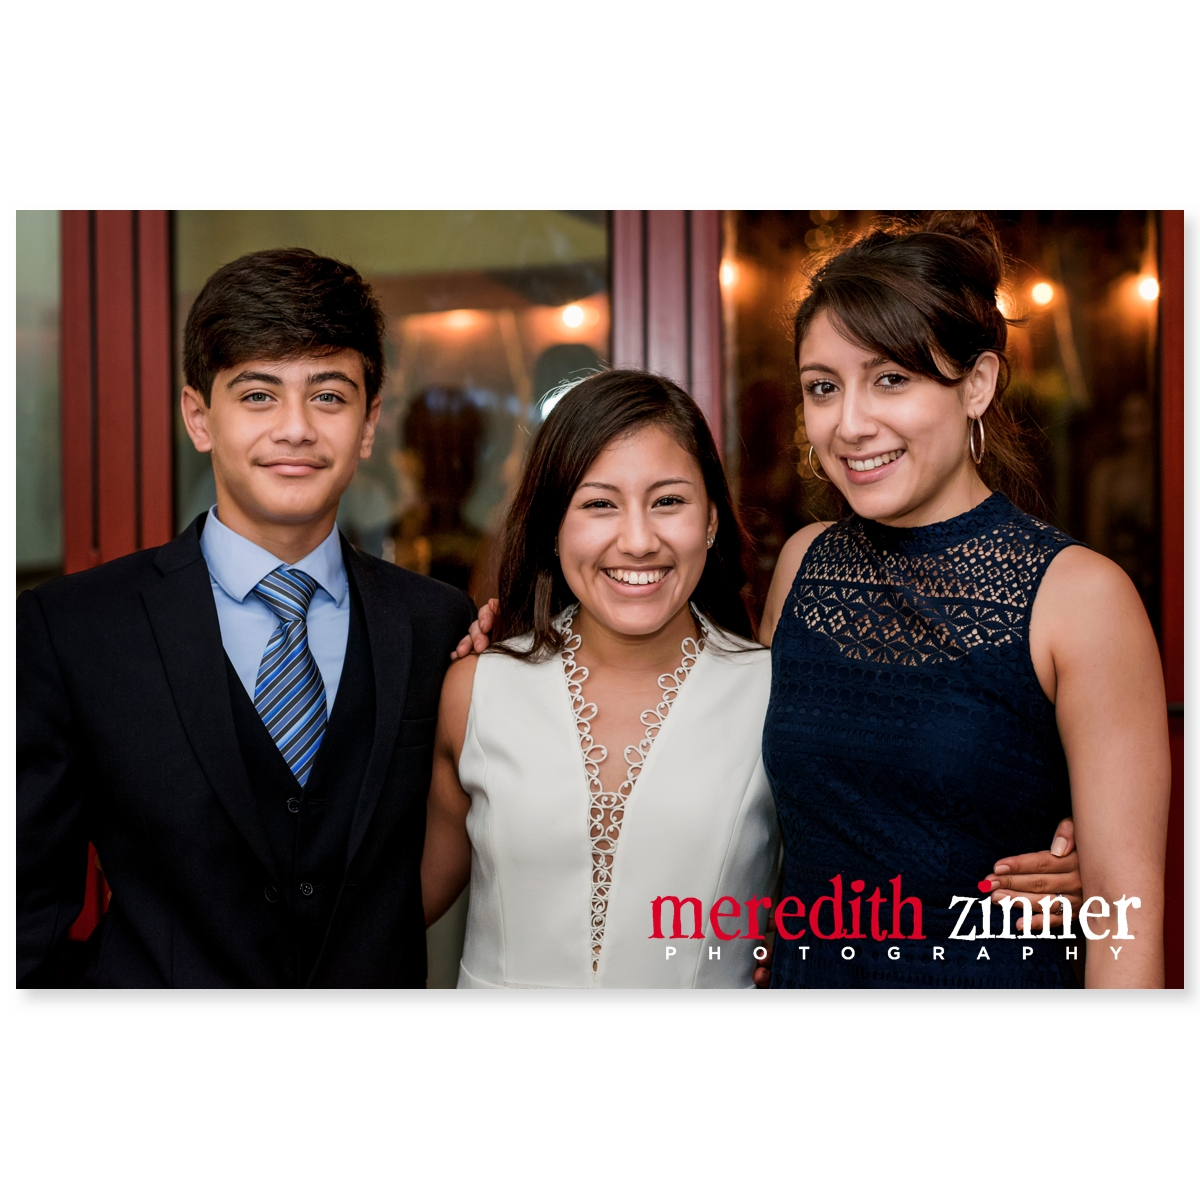 Meredith_Zinner_Photography_StilesCelebration_0433